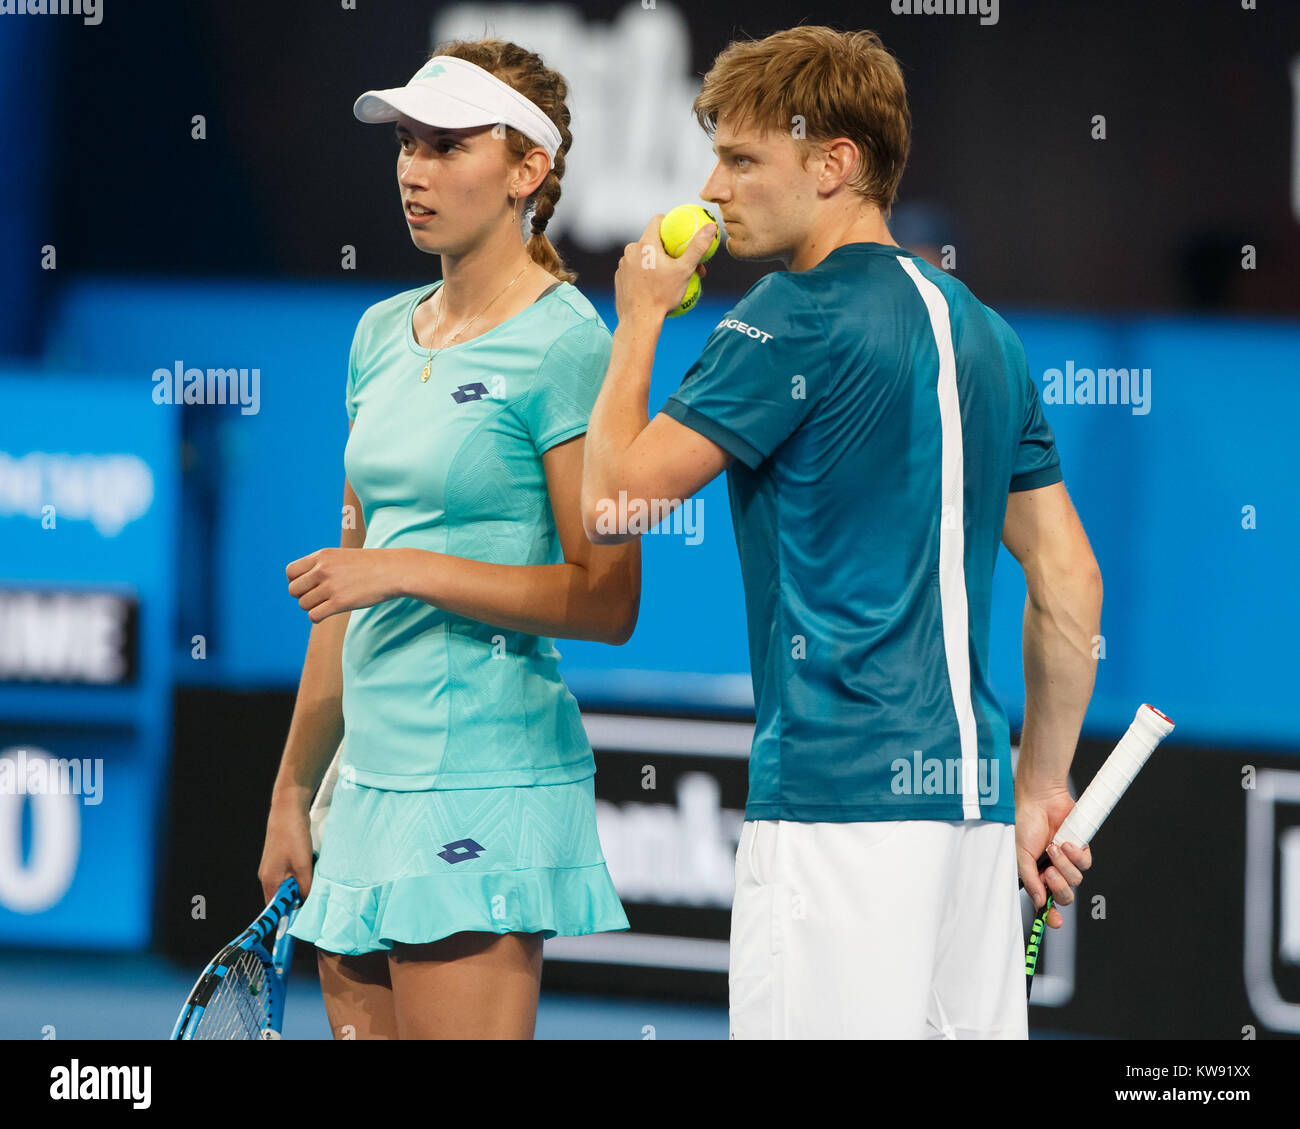 Mixed Doubles pair ELISE MERTENS and DAVID GOFFIN ( BEL) playing at the Hopman Cup 2018 in the Perth Arena - Perth, - Stock Image